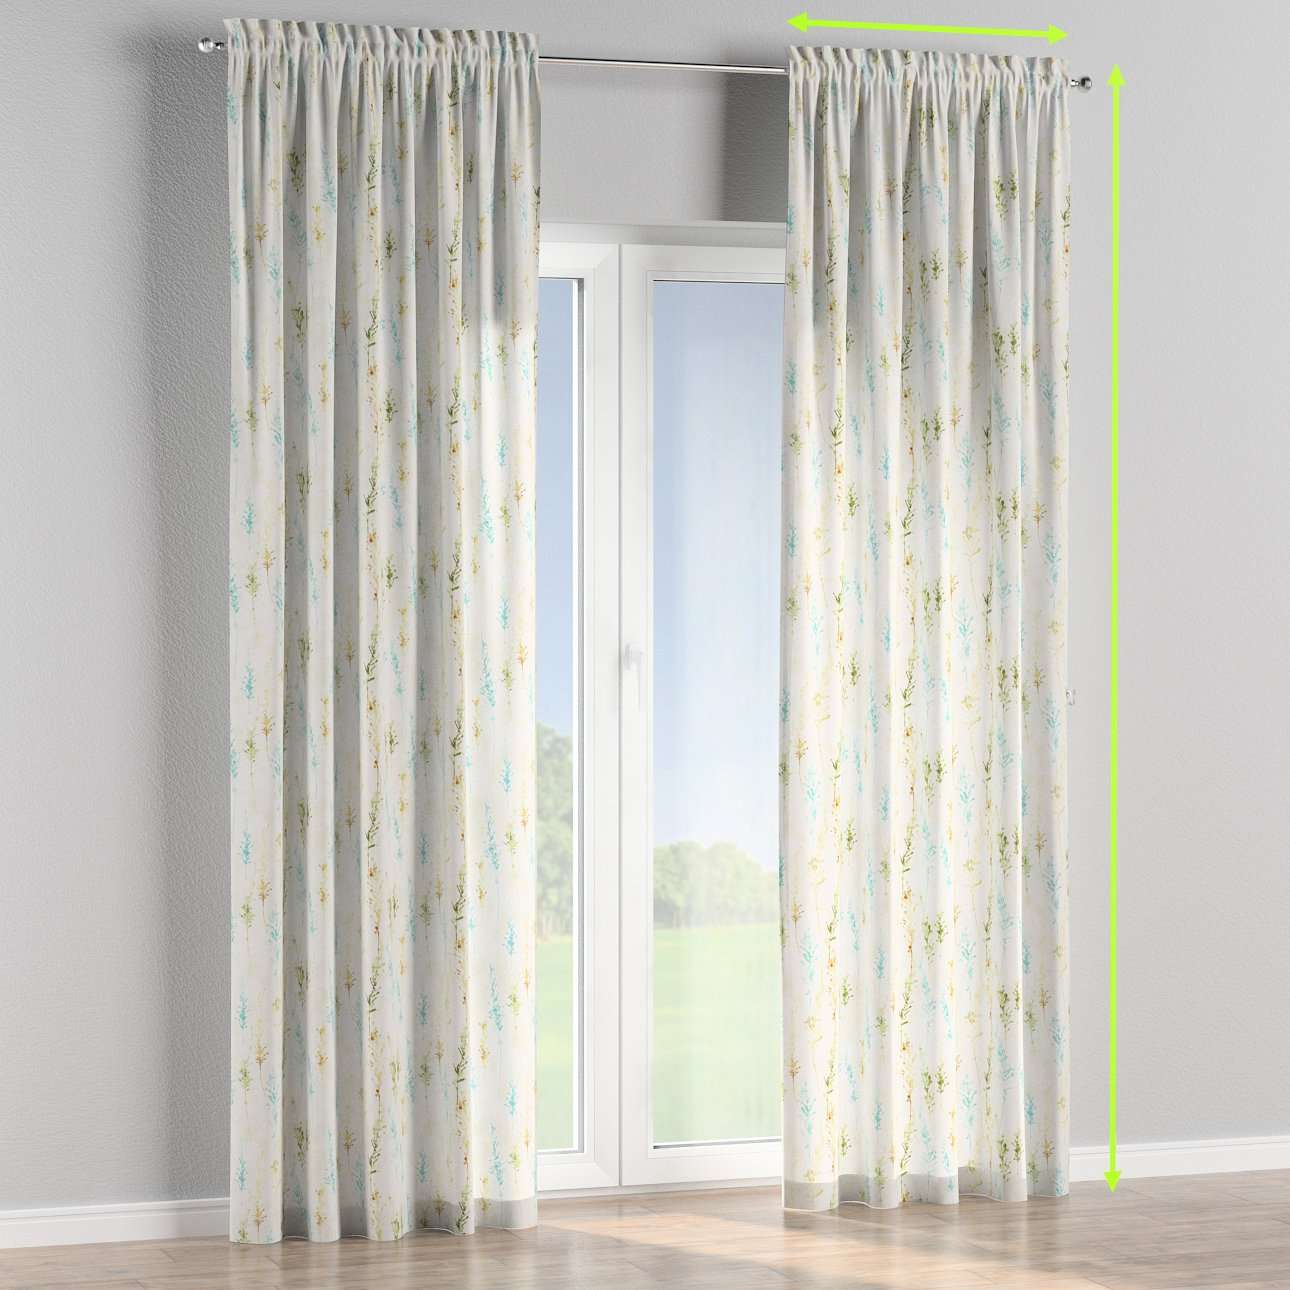 Slot and frill lined curtains in collection Acapulco, fabric: 141-38